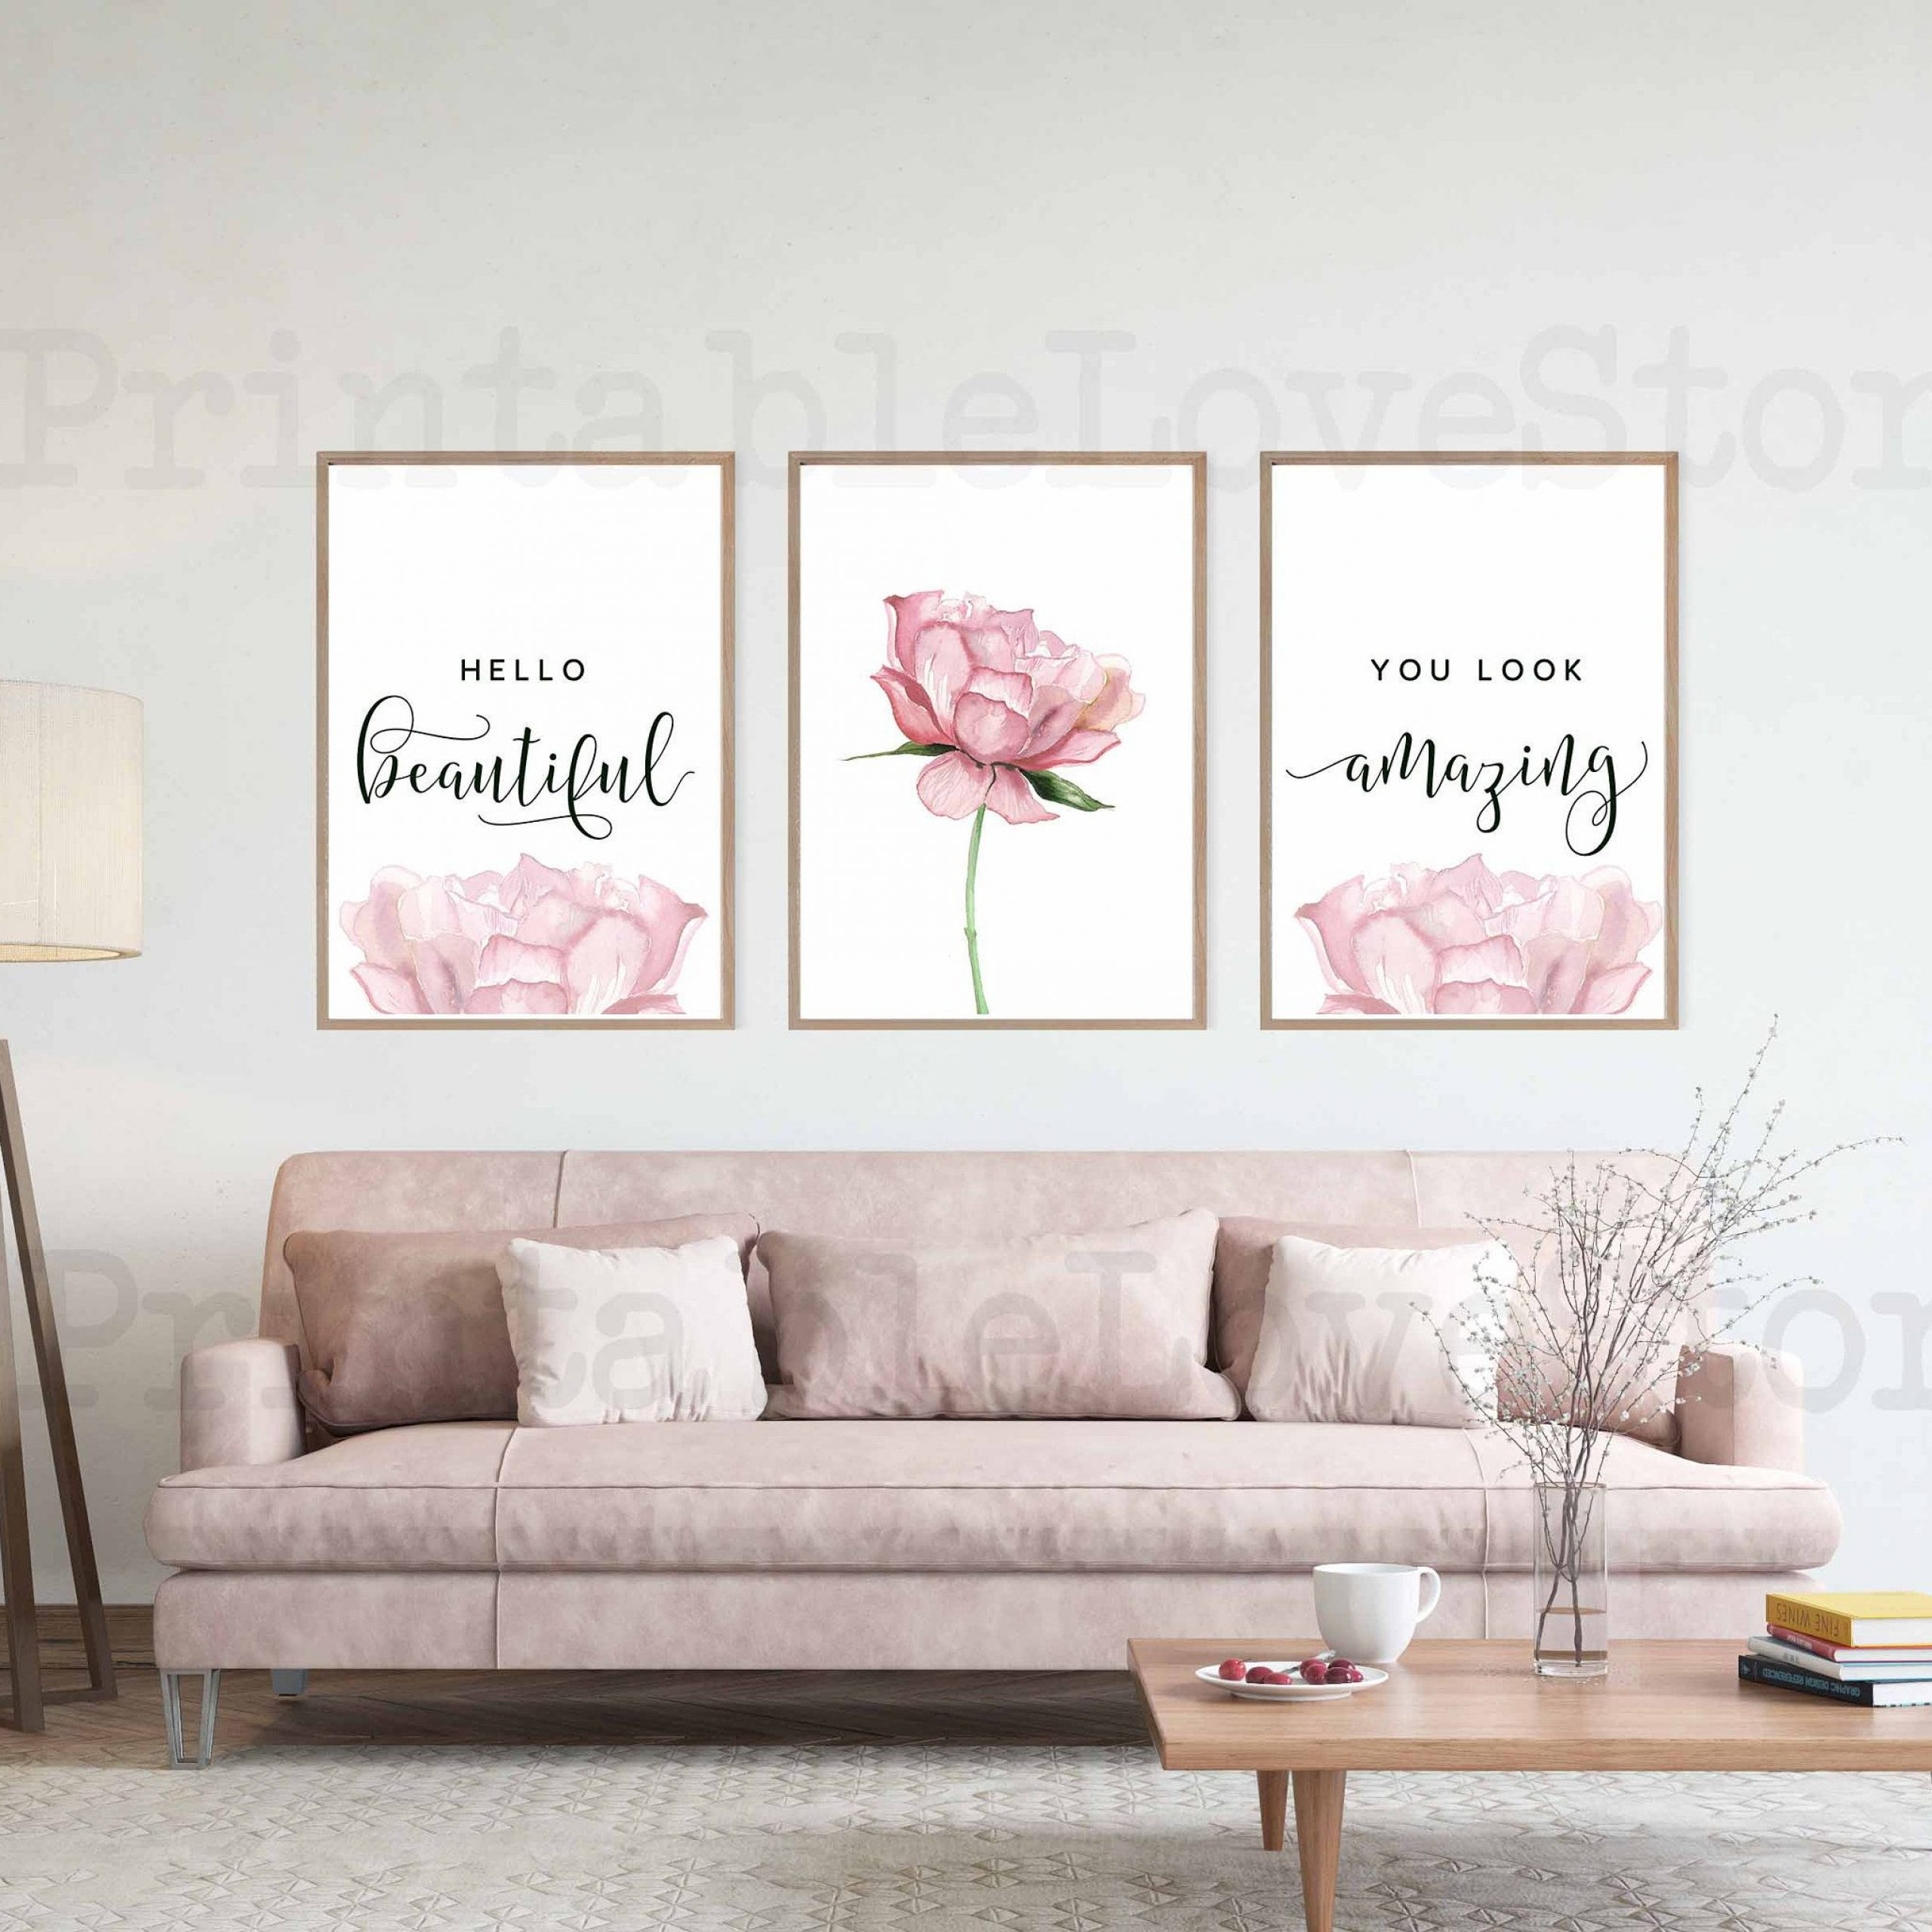 Featured Photo of Blended Fabric Hello Beauty-full Wall Hangings